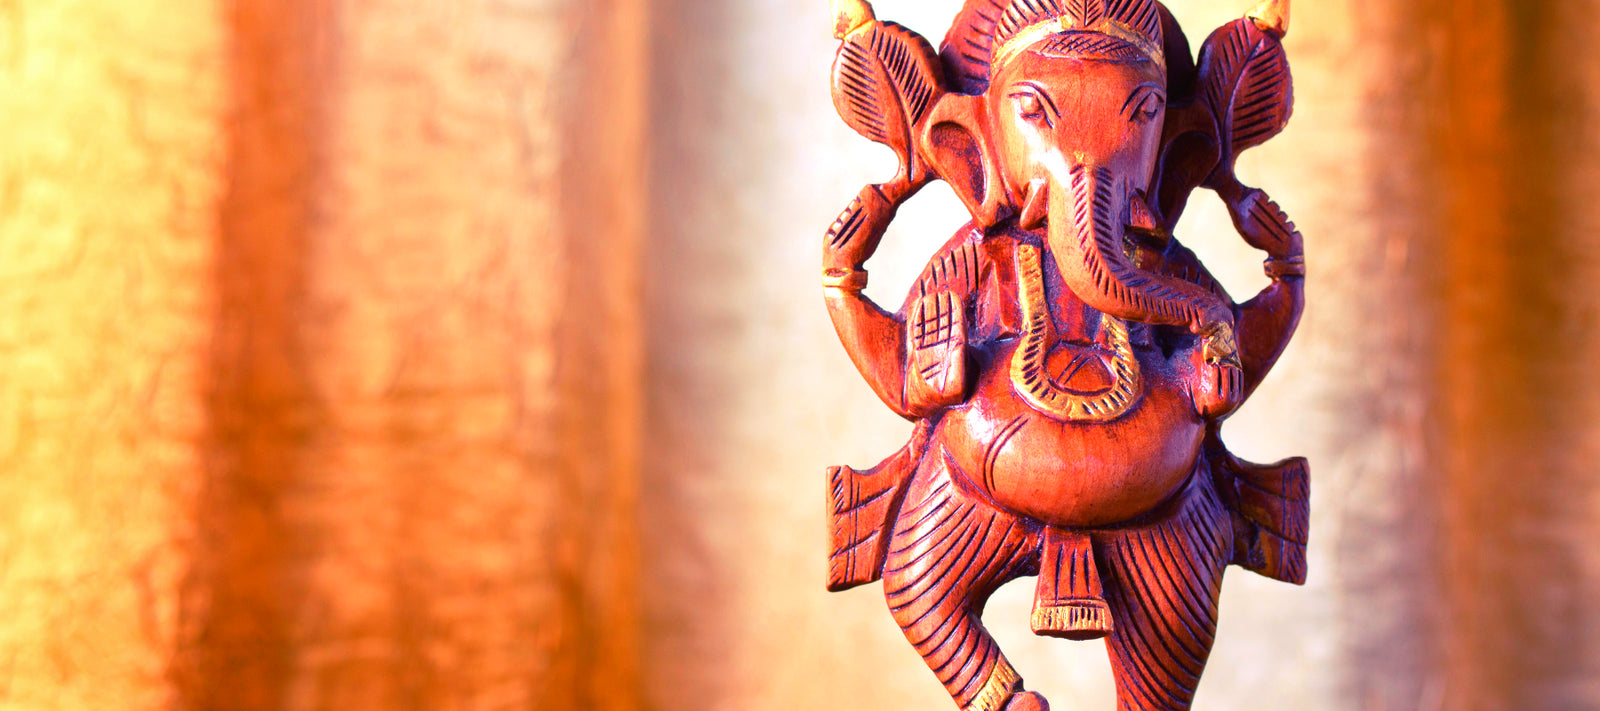 Ganesha Statues for sale empowering women